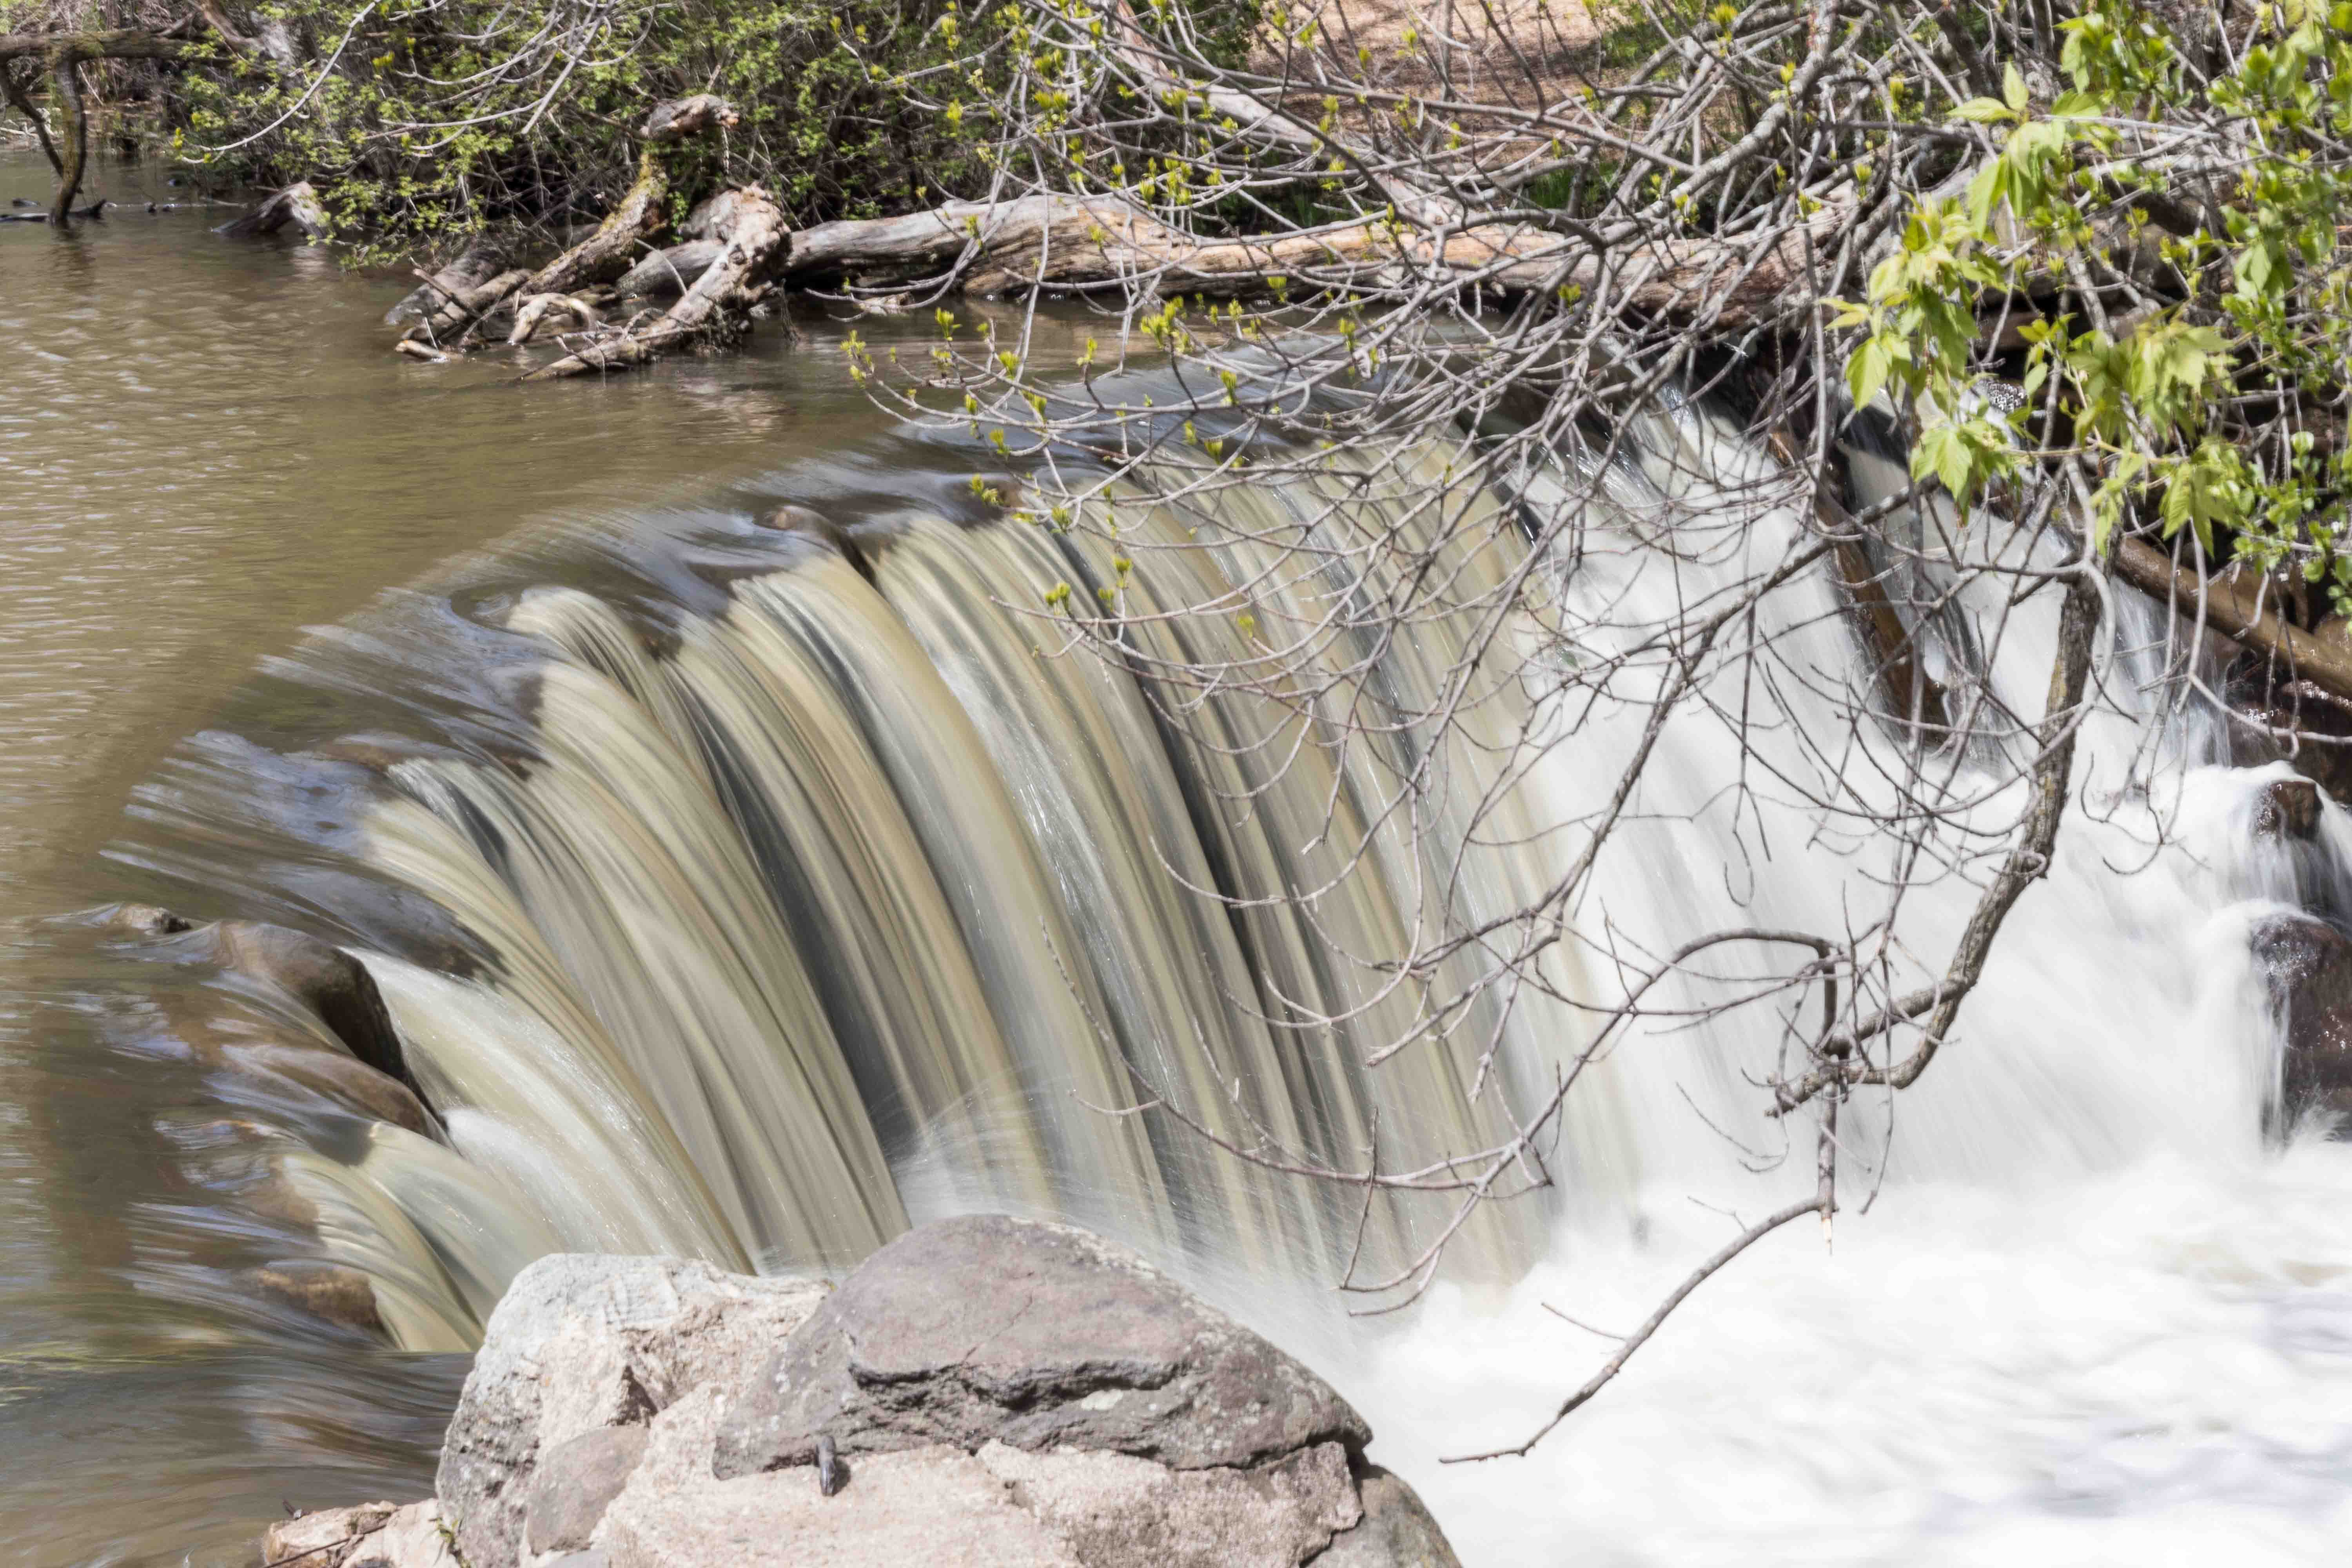 Whitnall Park Large Waterfall May 2017 | http://www.roseclearfield.com